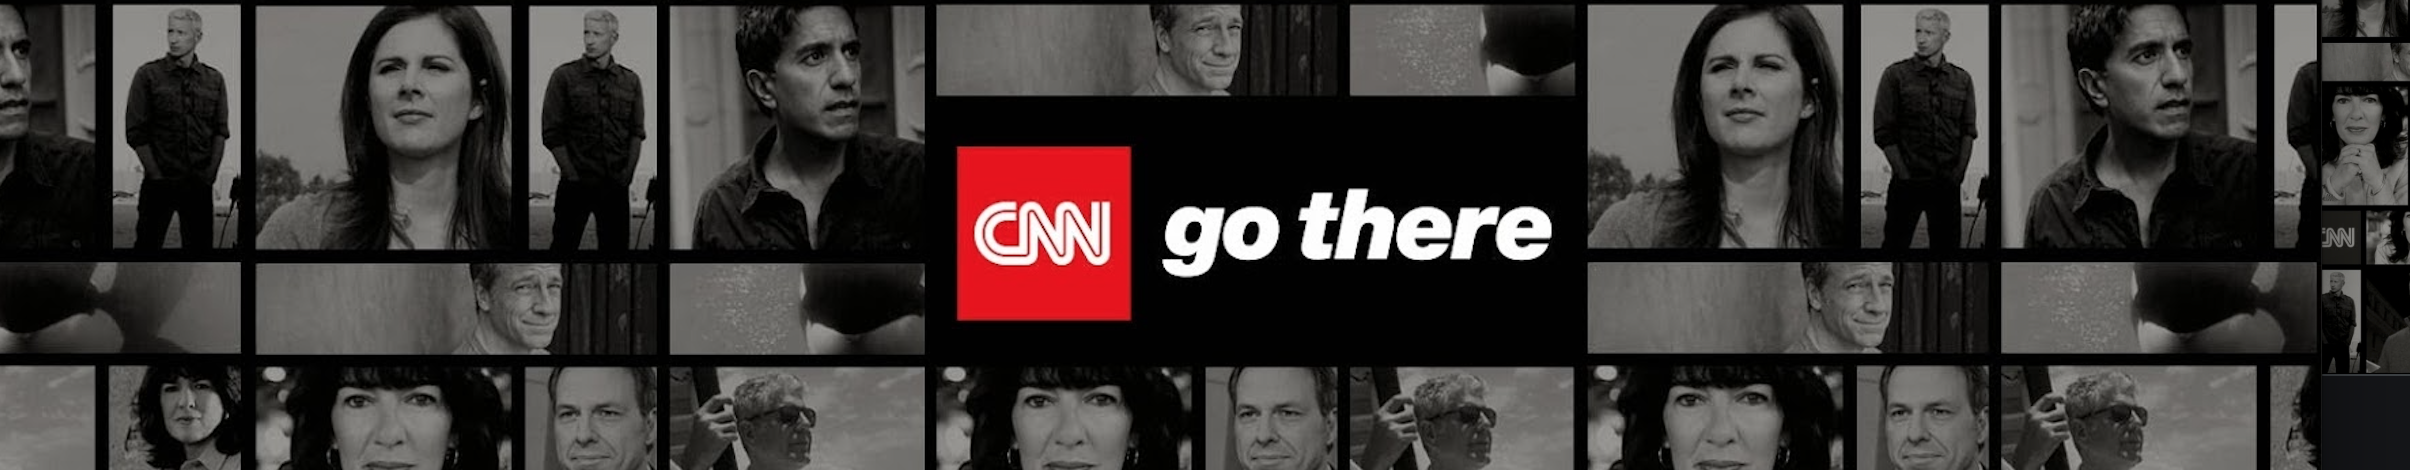 CNN Go There Banner